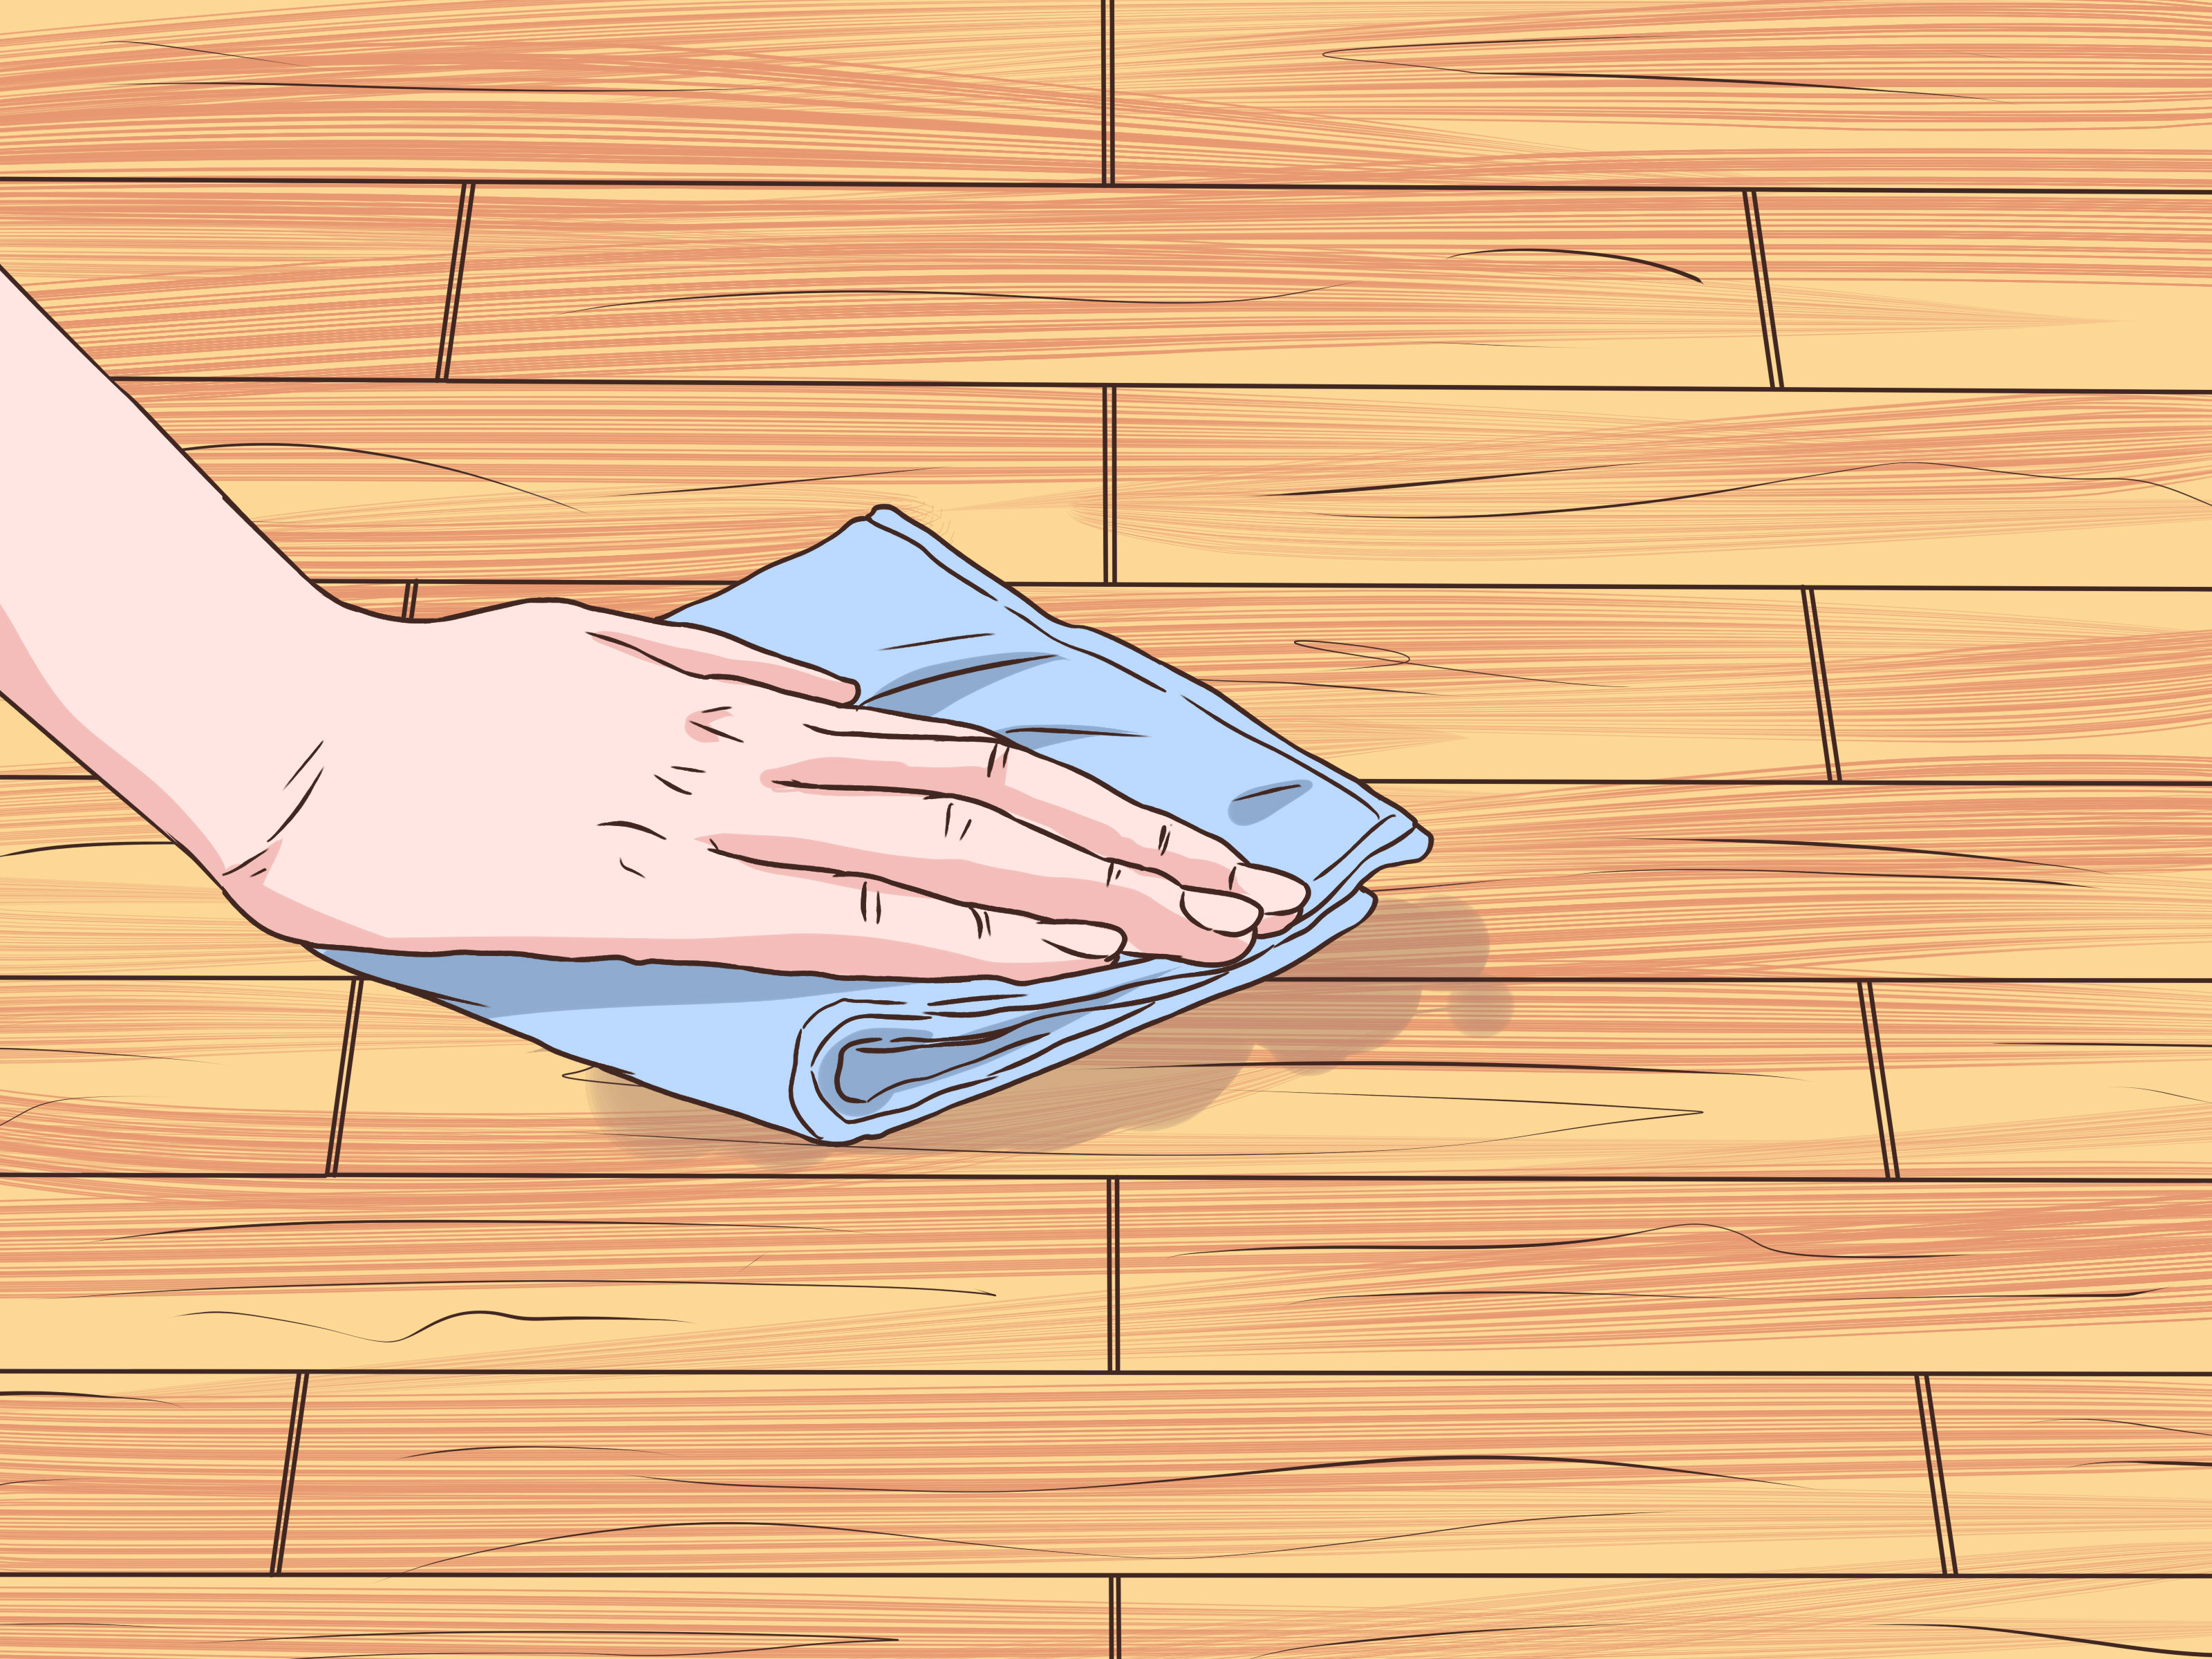 hardwood floor refinishing new orleans of how to clean sticky hardwood floors 9 steps with pictures pertaining to clean sticky hardwood floors step 9